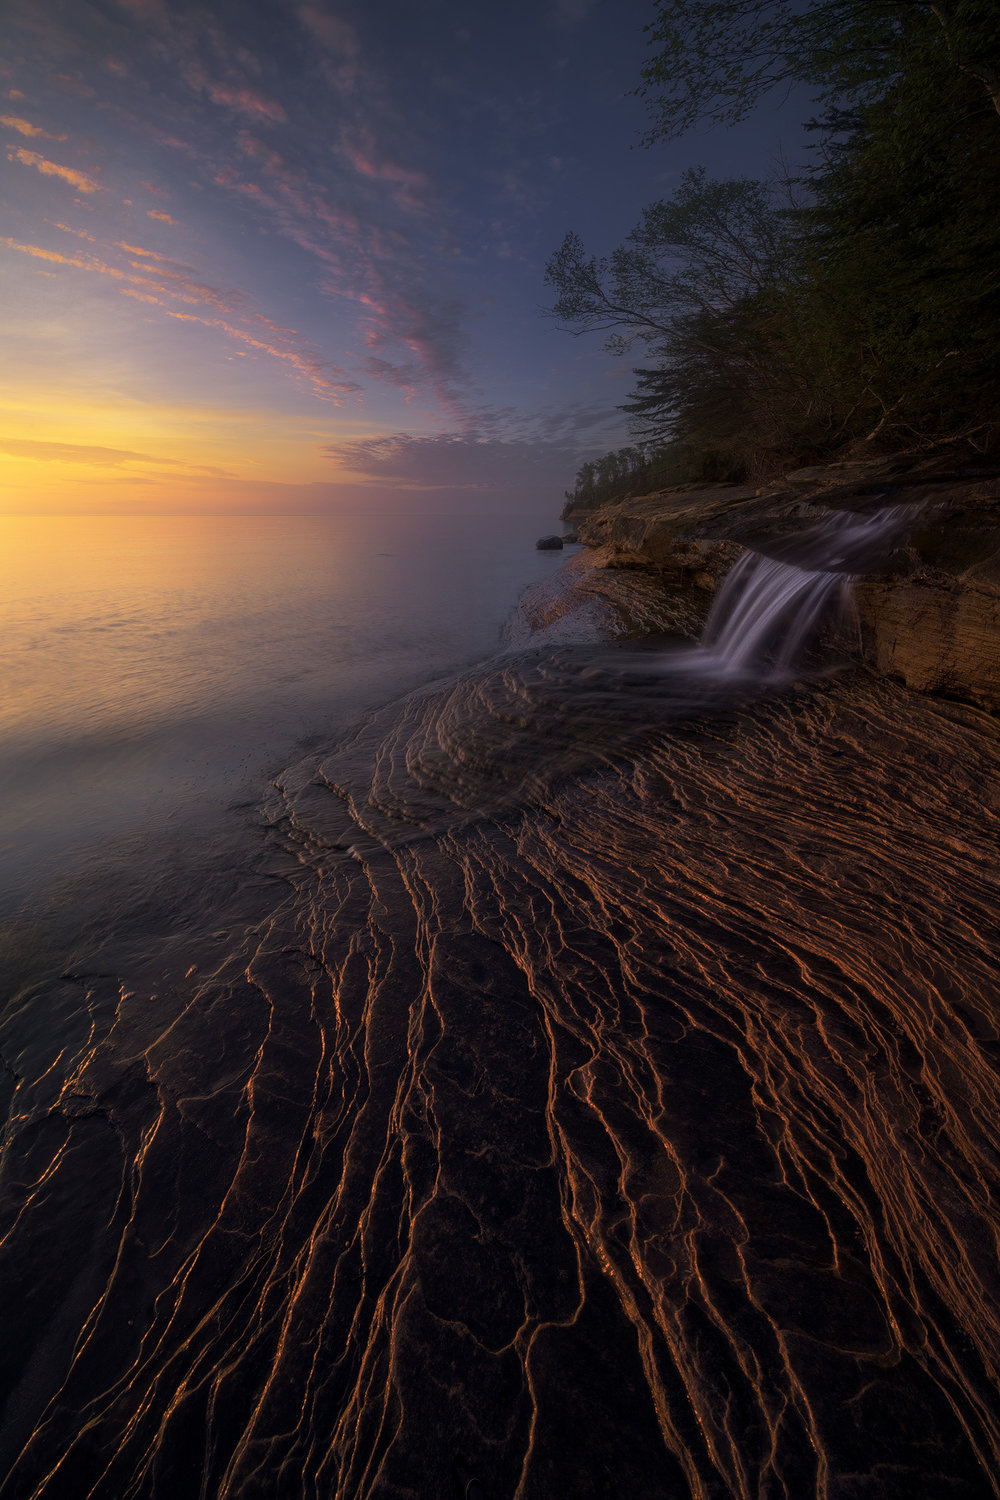 """Northern Reach""    Waterfall on the shores of Lake Superior. Irix 11mm at f/16, 1 second. In this case 11mm was really helpful, as the clouds were arcing high overhead, and the prominent foreground ridges lended themselves well to the wide view, adding lots of depth to the scene. I was probably less than 10 feet from the waterfall!"